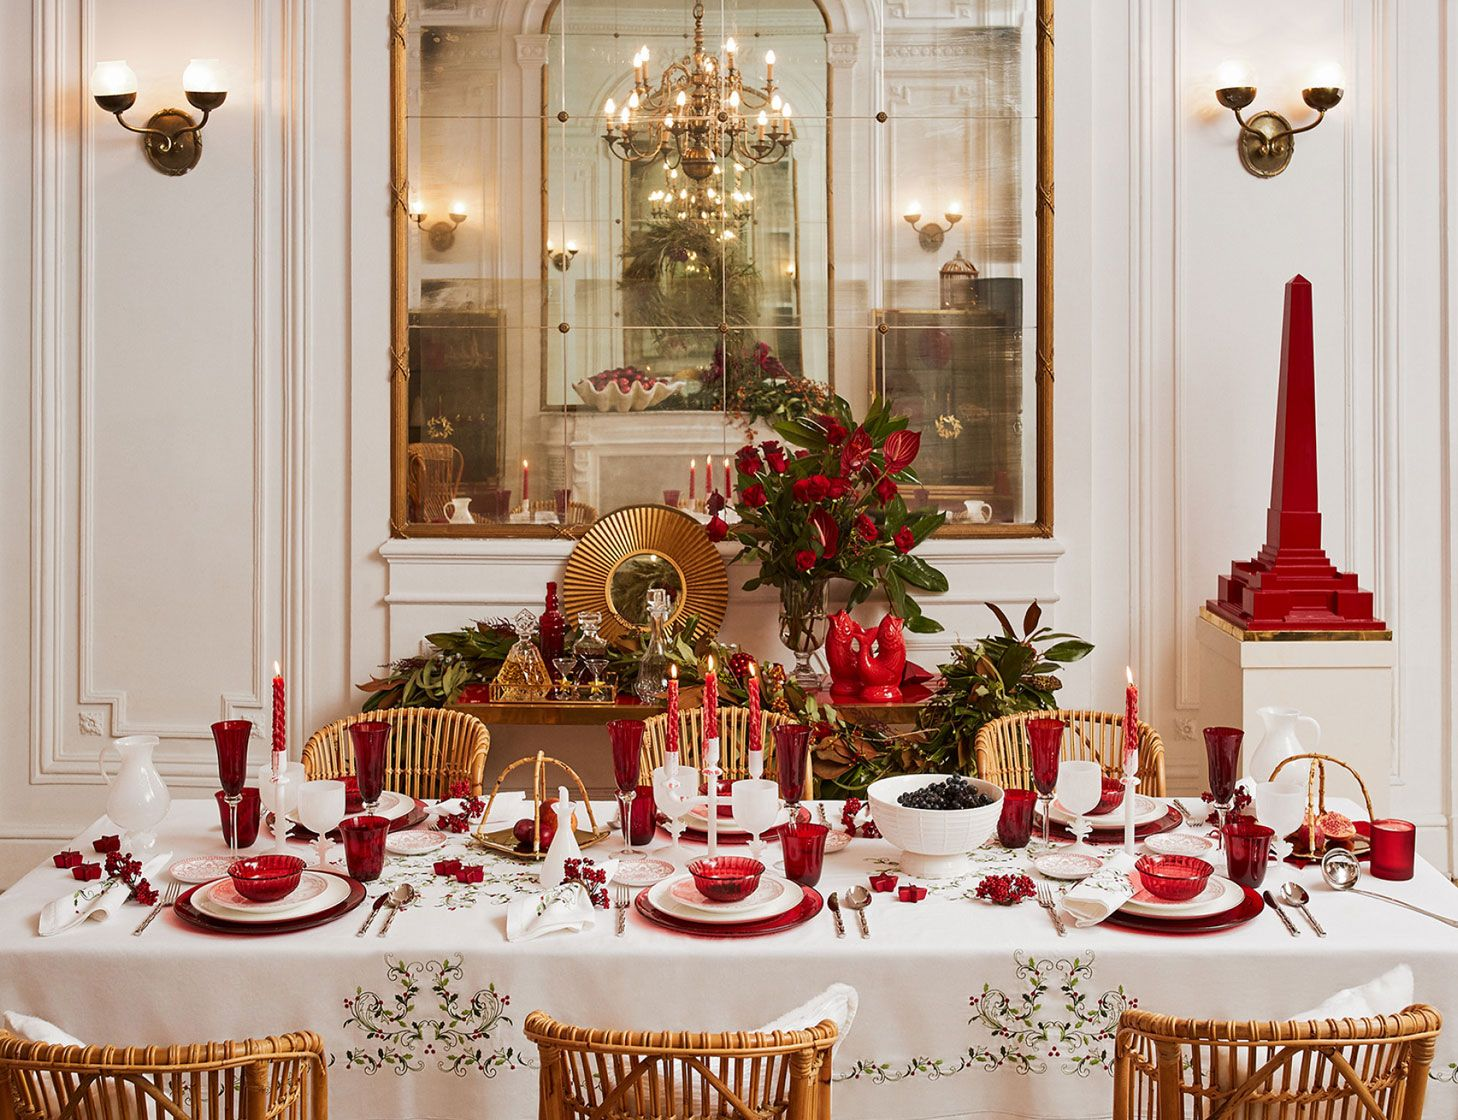 Chritsmas Table Tablescape Red Green White Decor Decorations Gold Zara Home Christmas Red Christmas Decor Christmas Table Settings